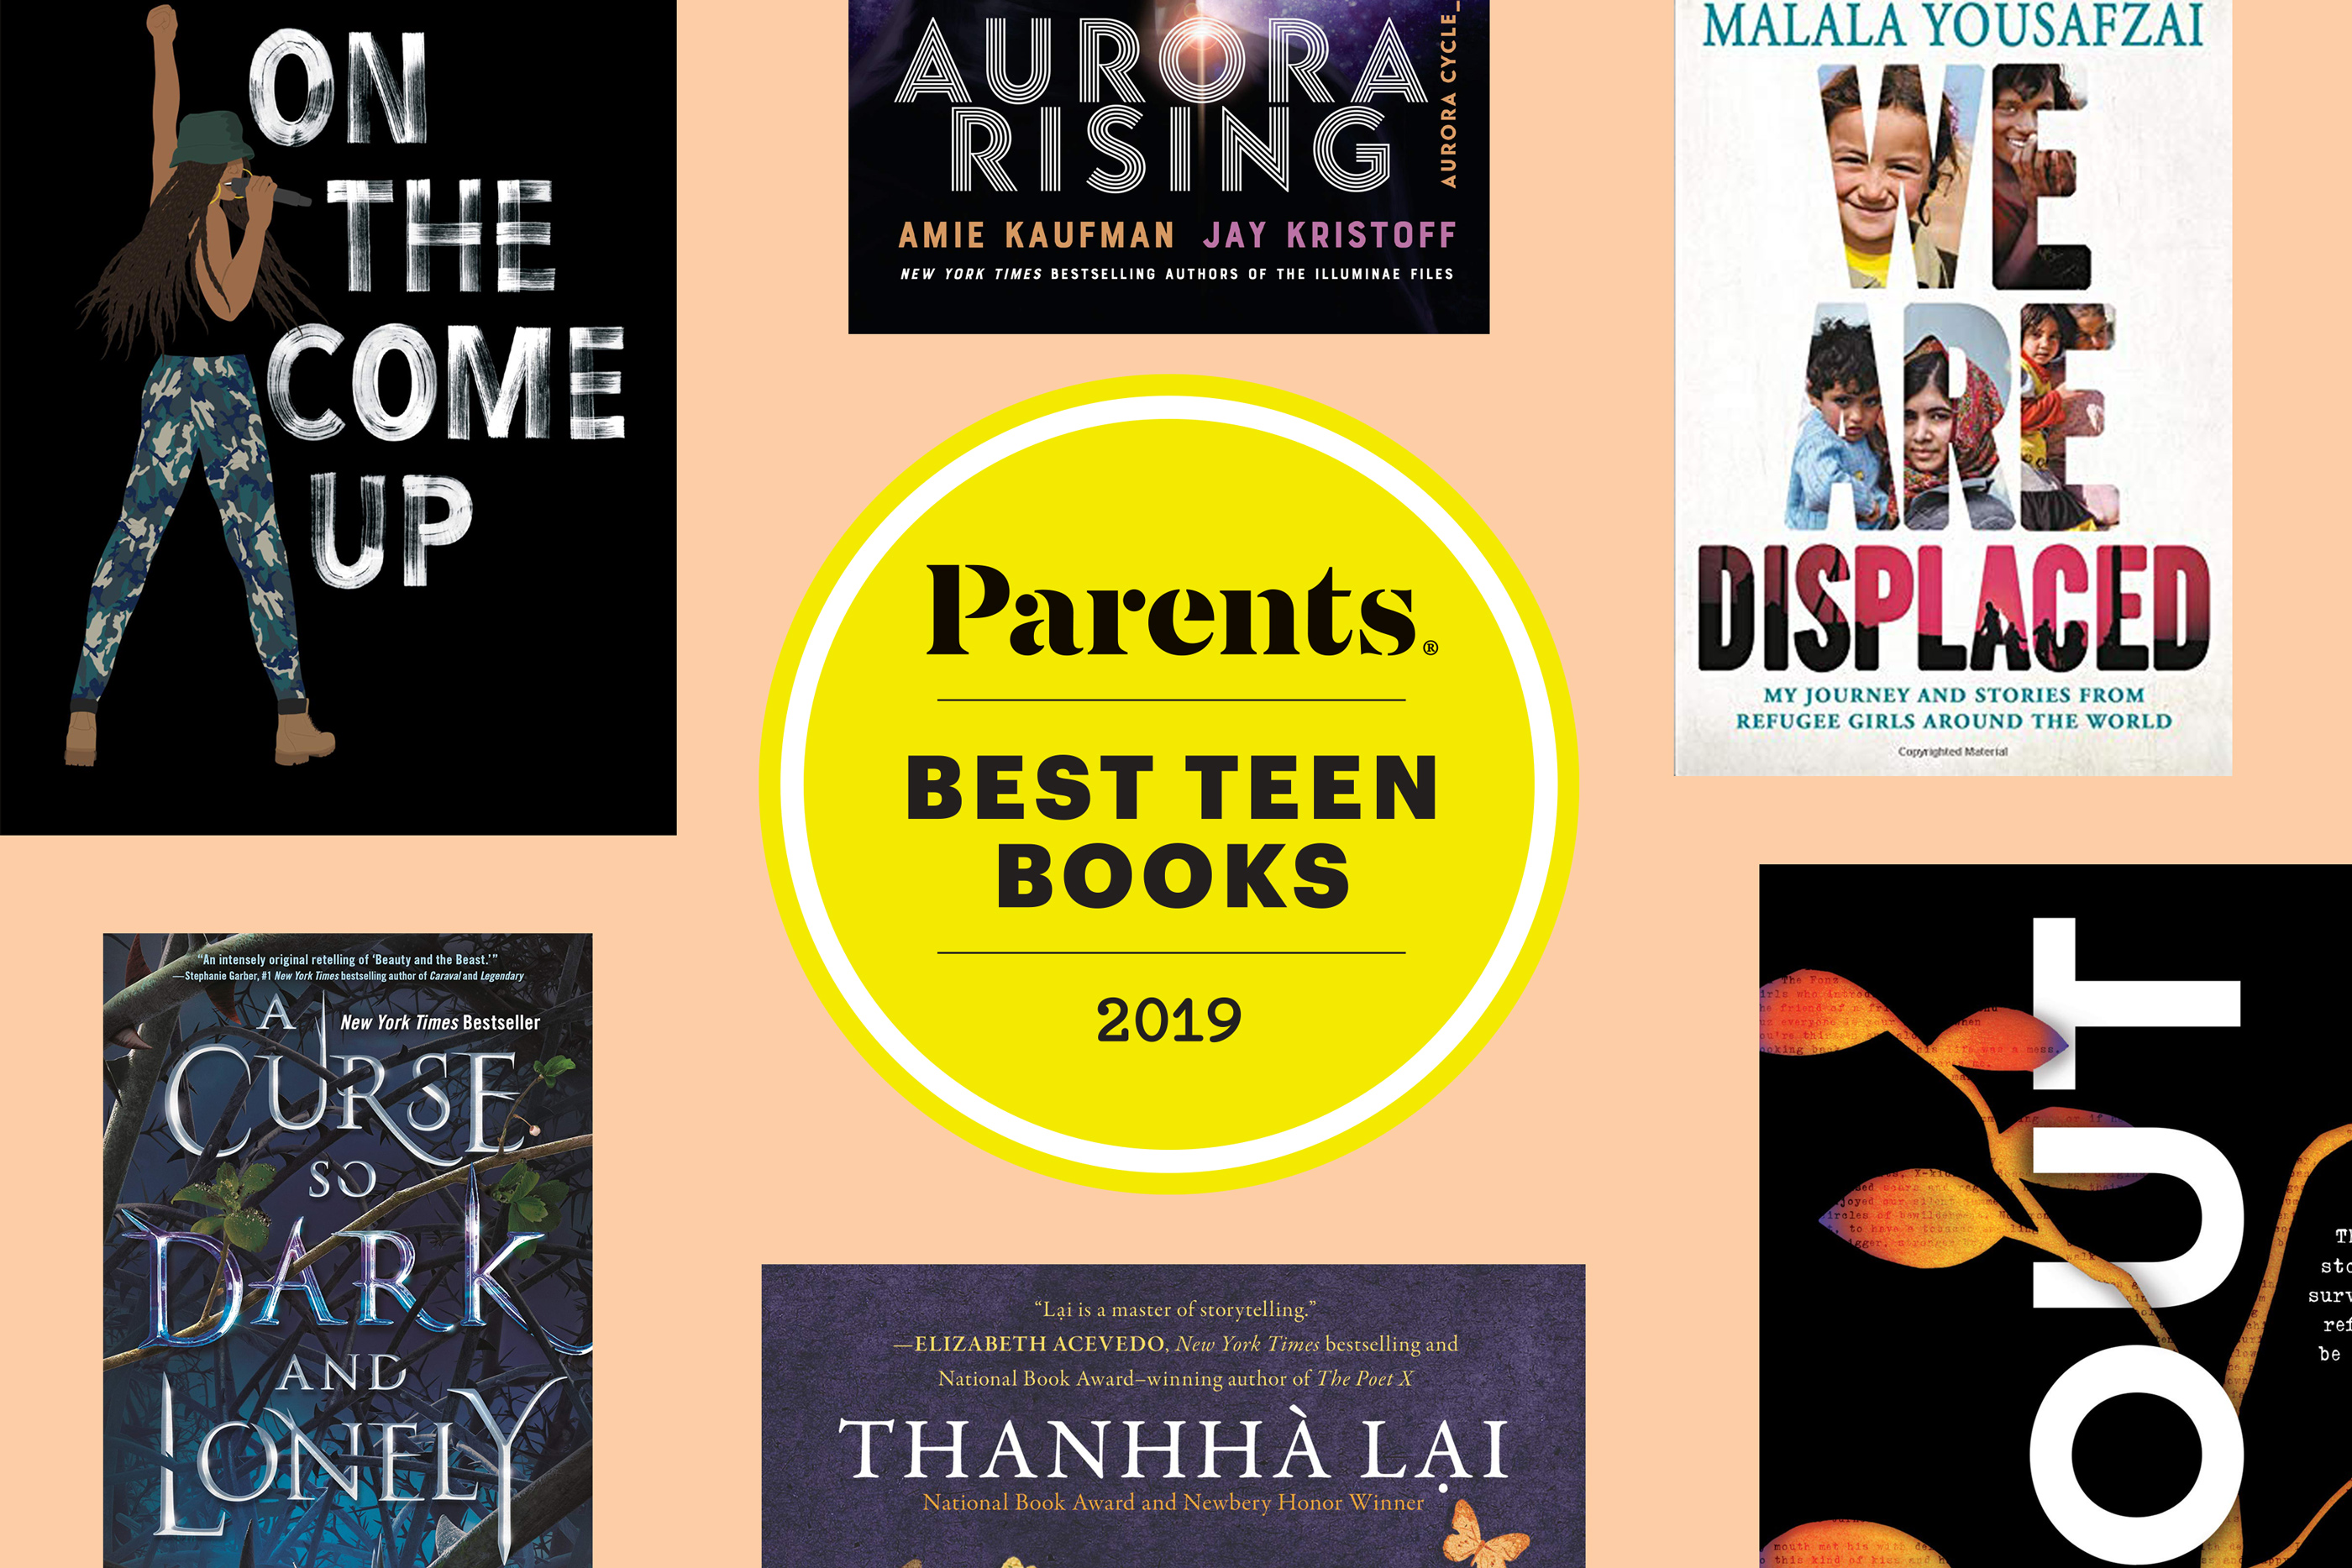 Parents Best Teen Books 2019